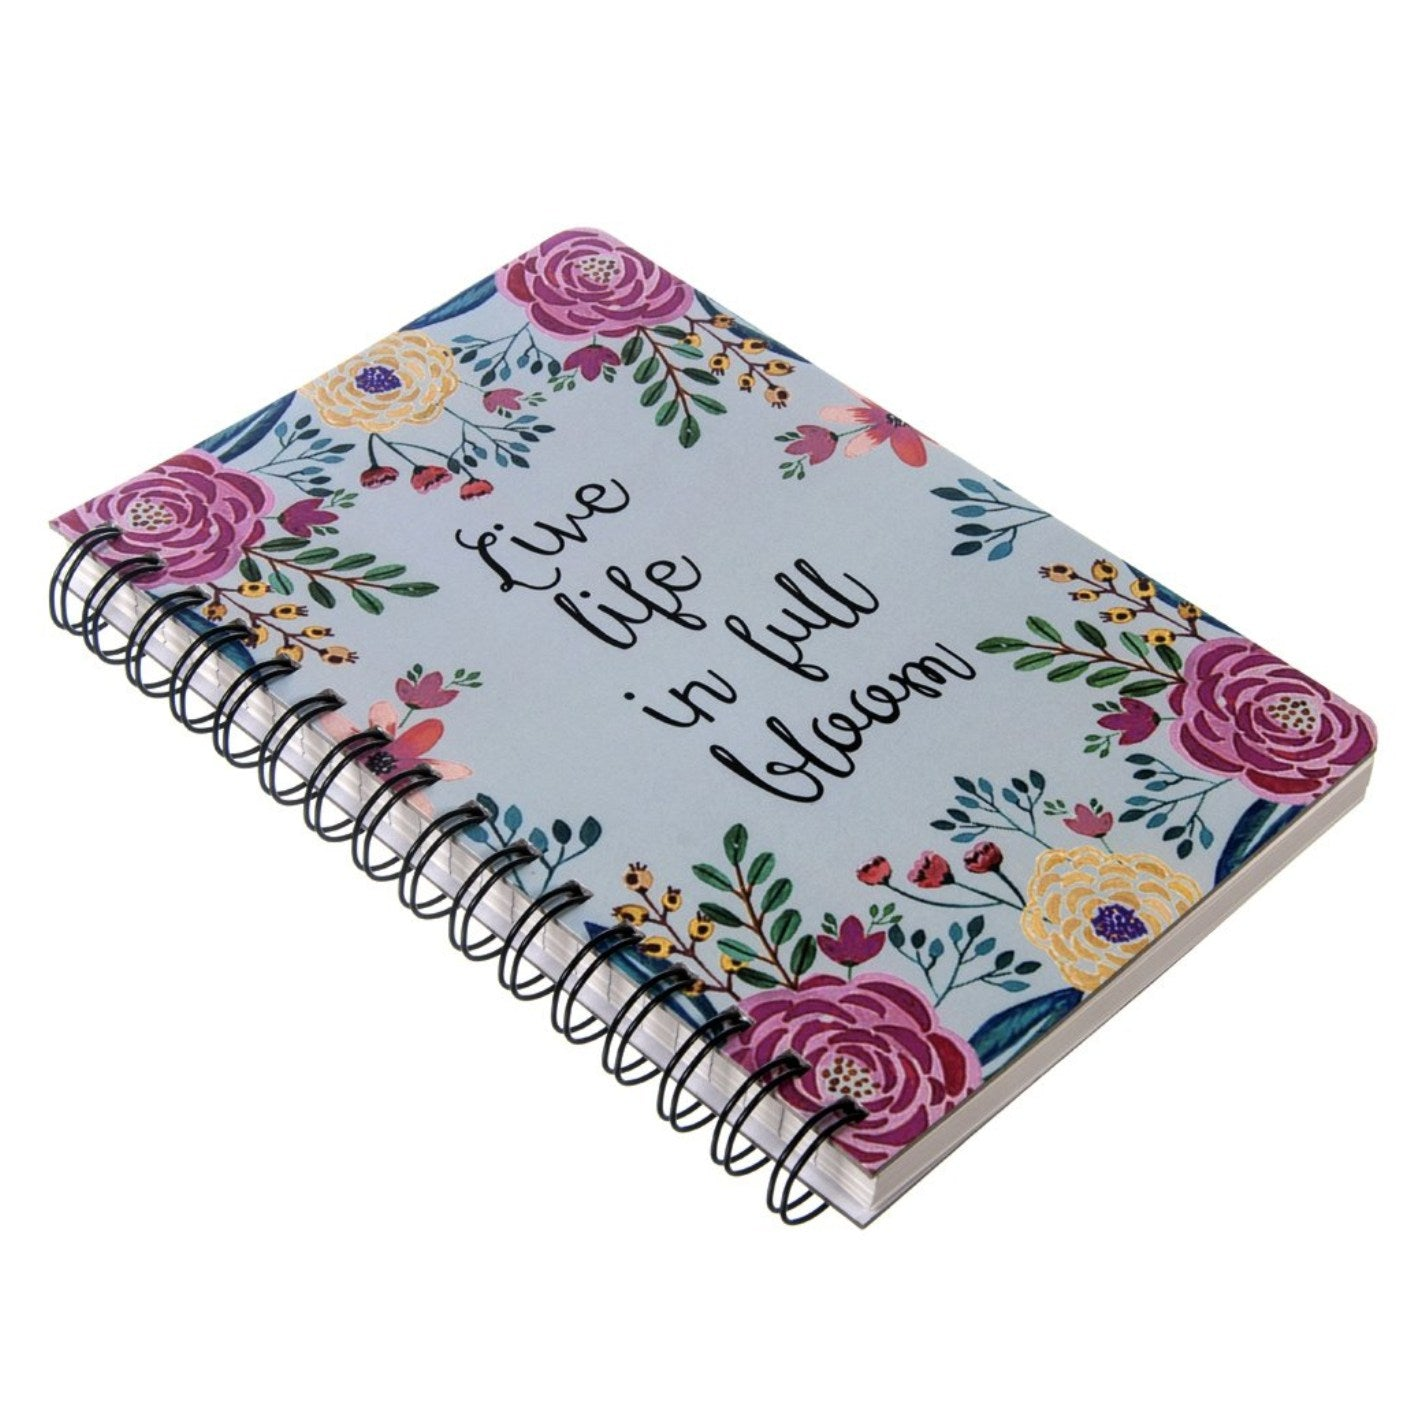 Gifts of Love Viva Notebook A5 - Live life in Full Bloom